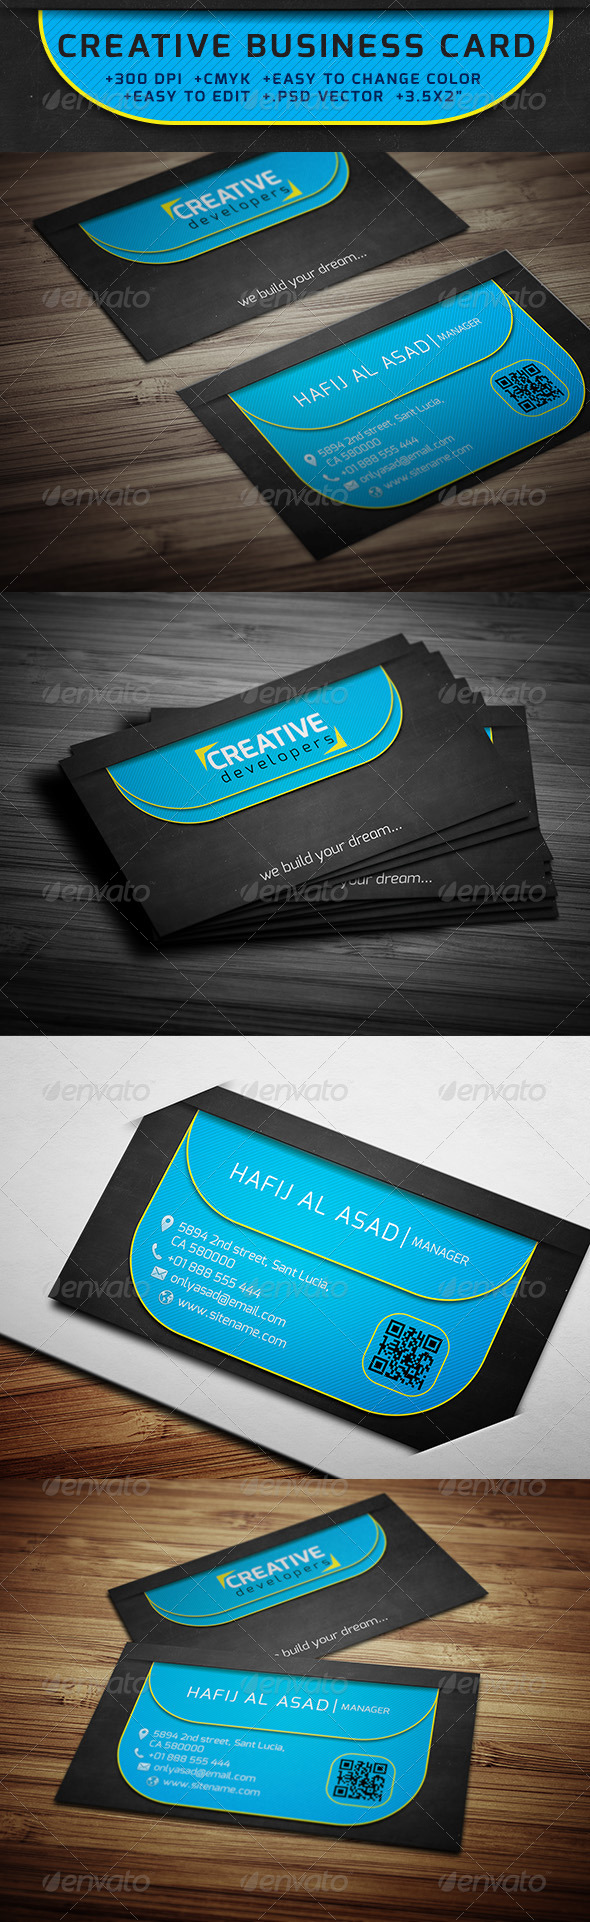 GraphicRiver Creative Business Card 6339121